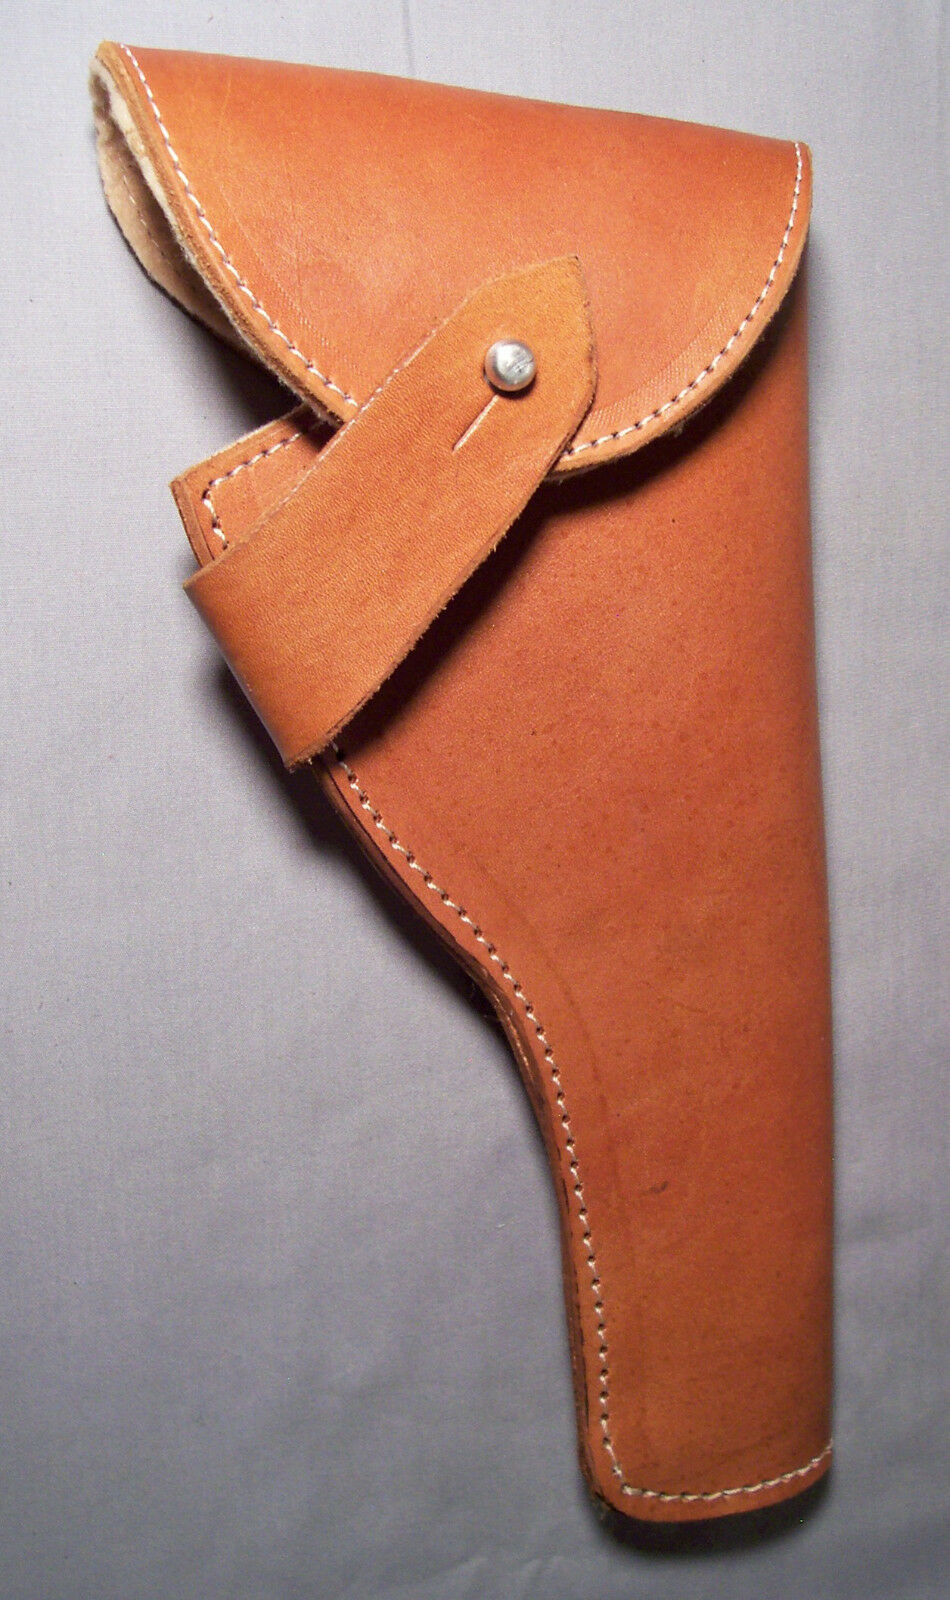 12 INCH TAN GUN HOLSTER INDIANA  JONES STYLE REPLICA  big discount prices